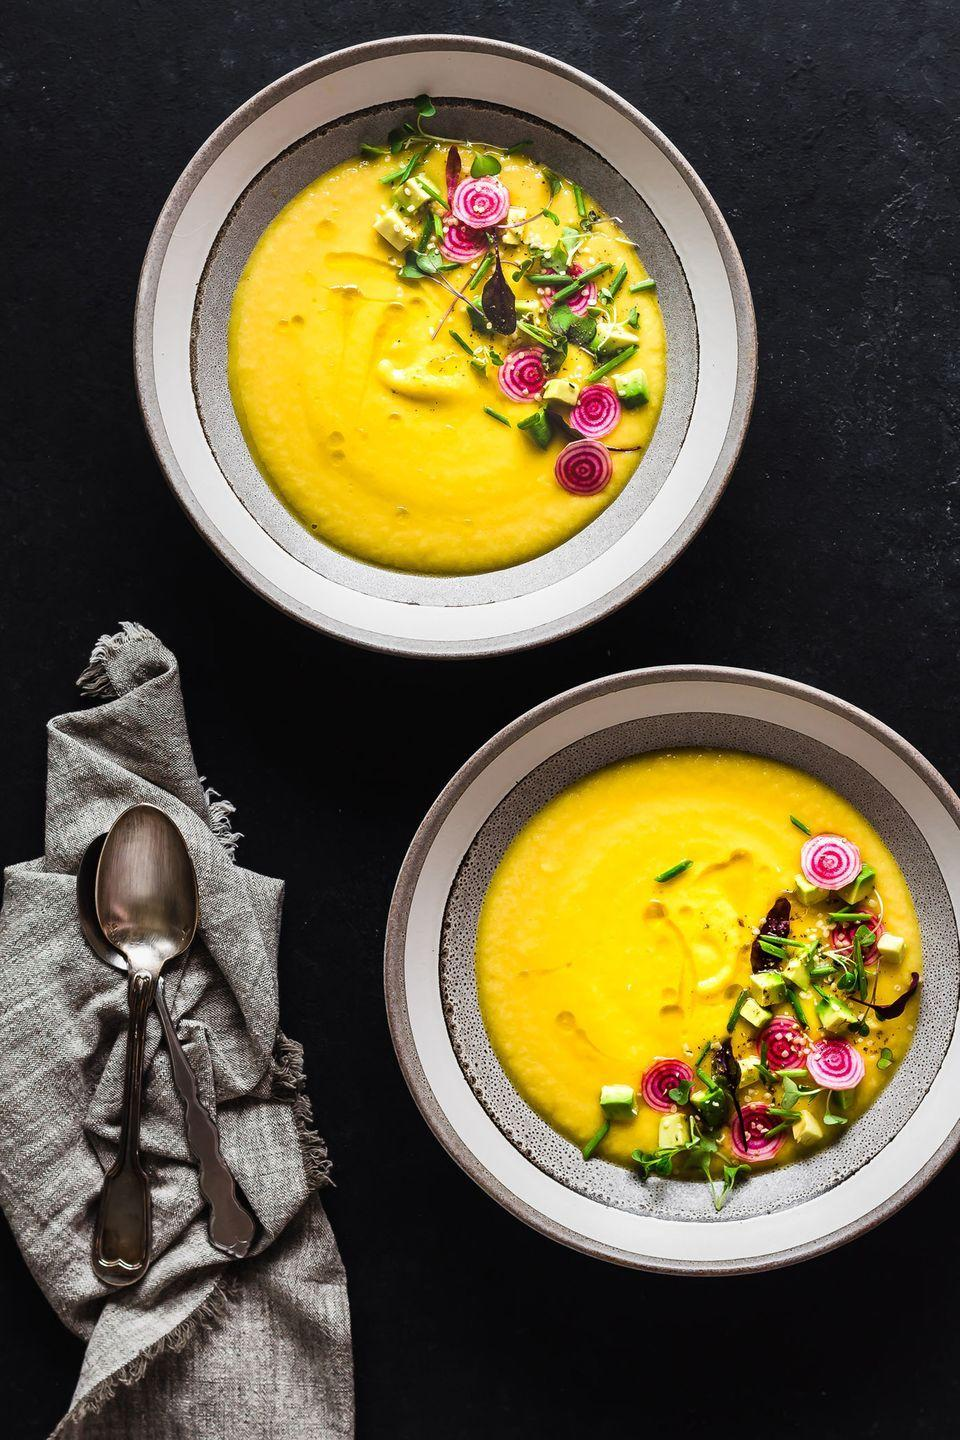 """<p>Top this bright and beautiful recipe with beets, micro greens, and hemp seeds for even more flavor.</p><p><strong>Get the recipe at <a href=""""http://lepetiteats.com/golden-beet-gazpacho/"""" rel=""""nofollow noopener"""" target=""""_blank"""" data-ylk=""""slk:Le Petit Eats"""" class=""""link rapid-noclick-resp"""">Le Petit Eats</a>.</strong></p>"""